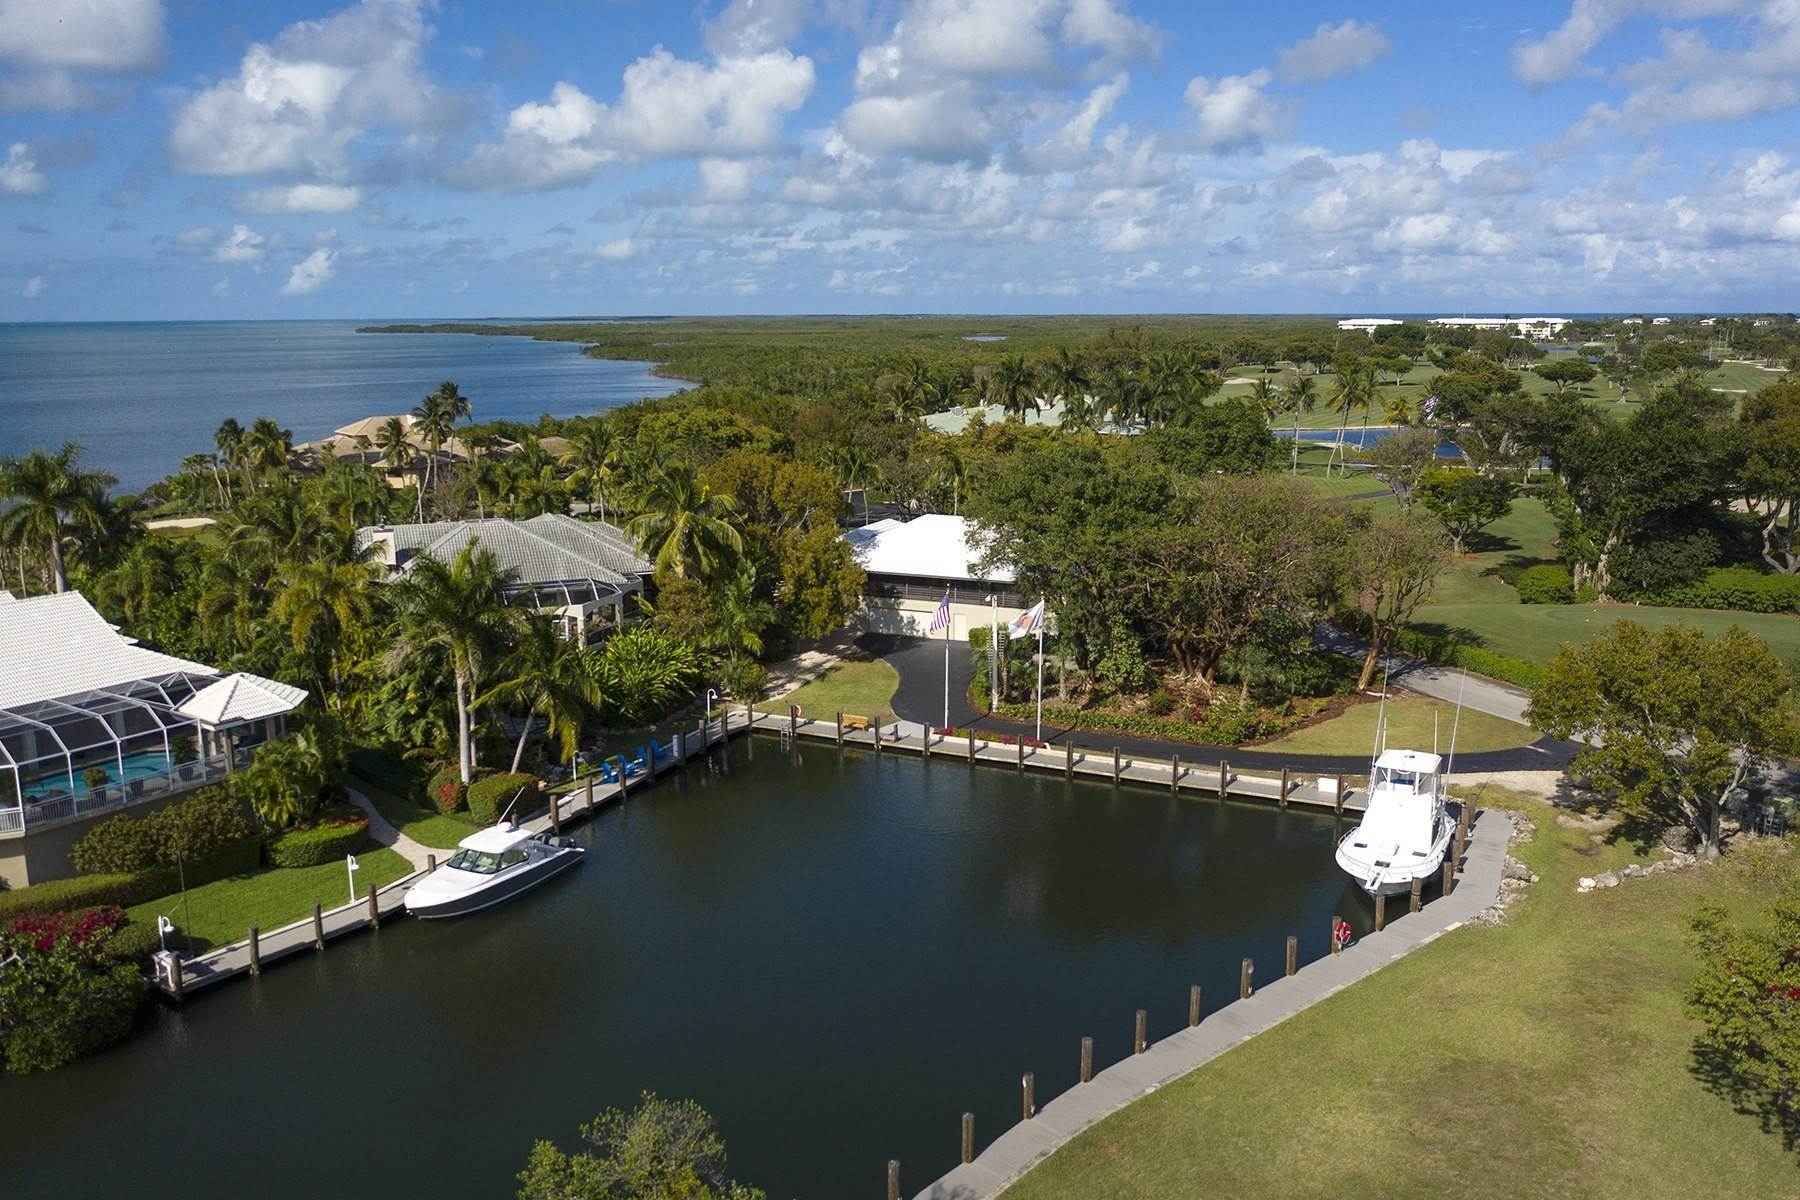 17. Property for Sale at Pumpkin Key - Private Island, Key Largo, FL Pumpkin Key - Private Island Key Largo, Florida 33037 United States